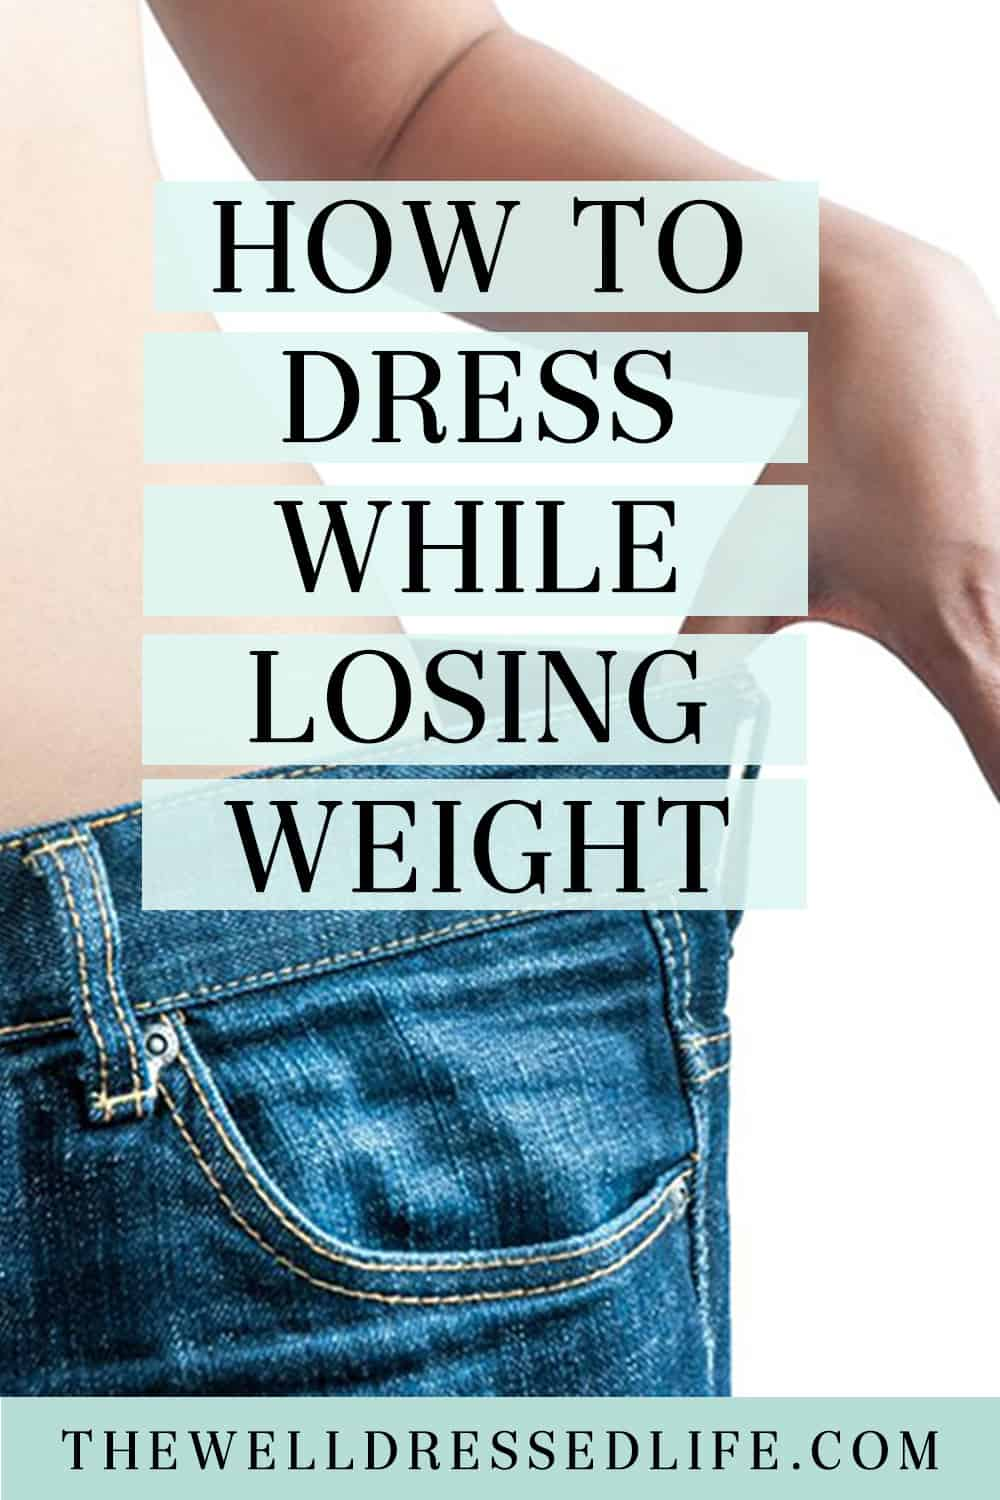 How to Dress While Losing Weight